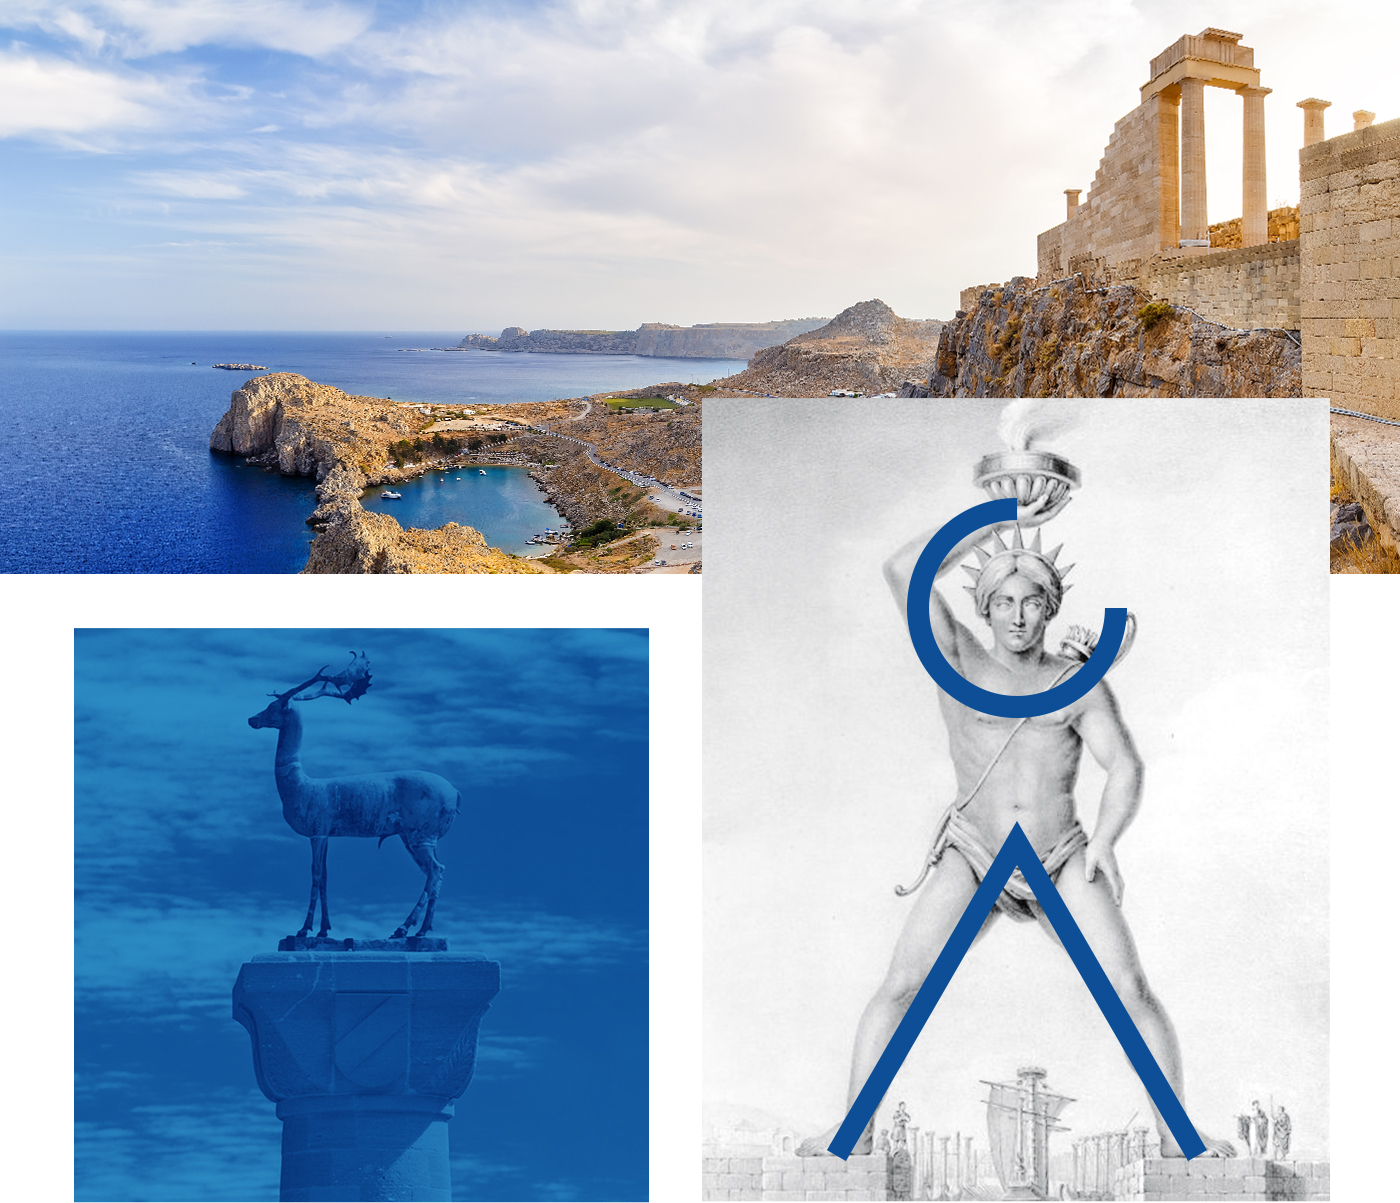 Interweave came up with a summation of Rhodes' history as well as the values of Amada Colossos